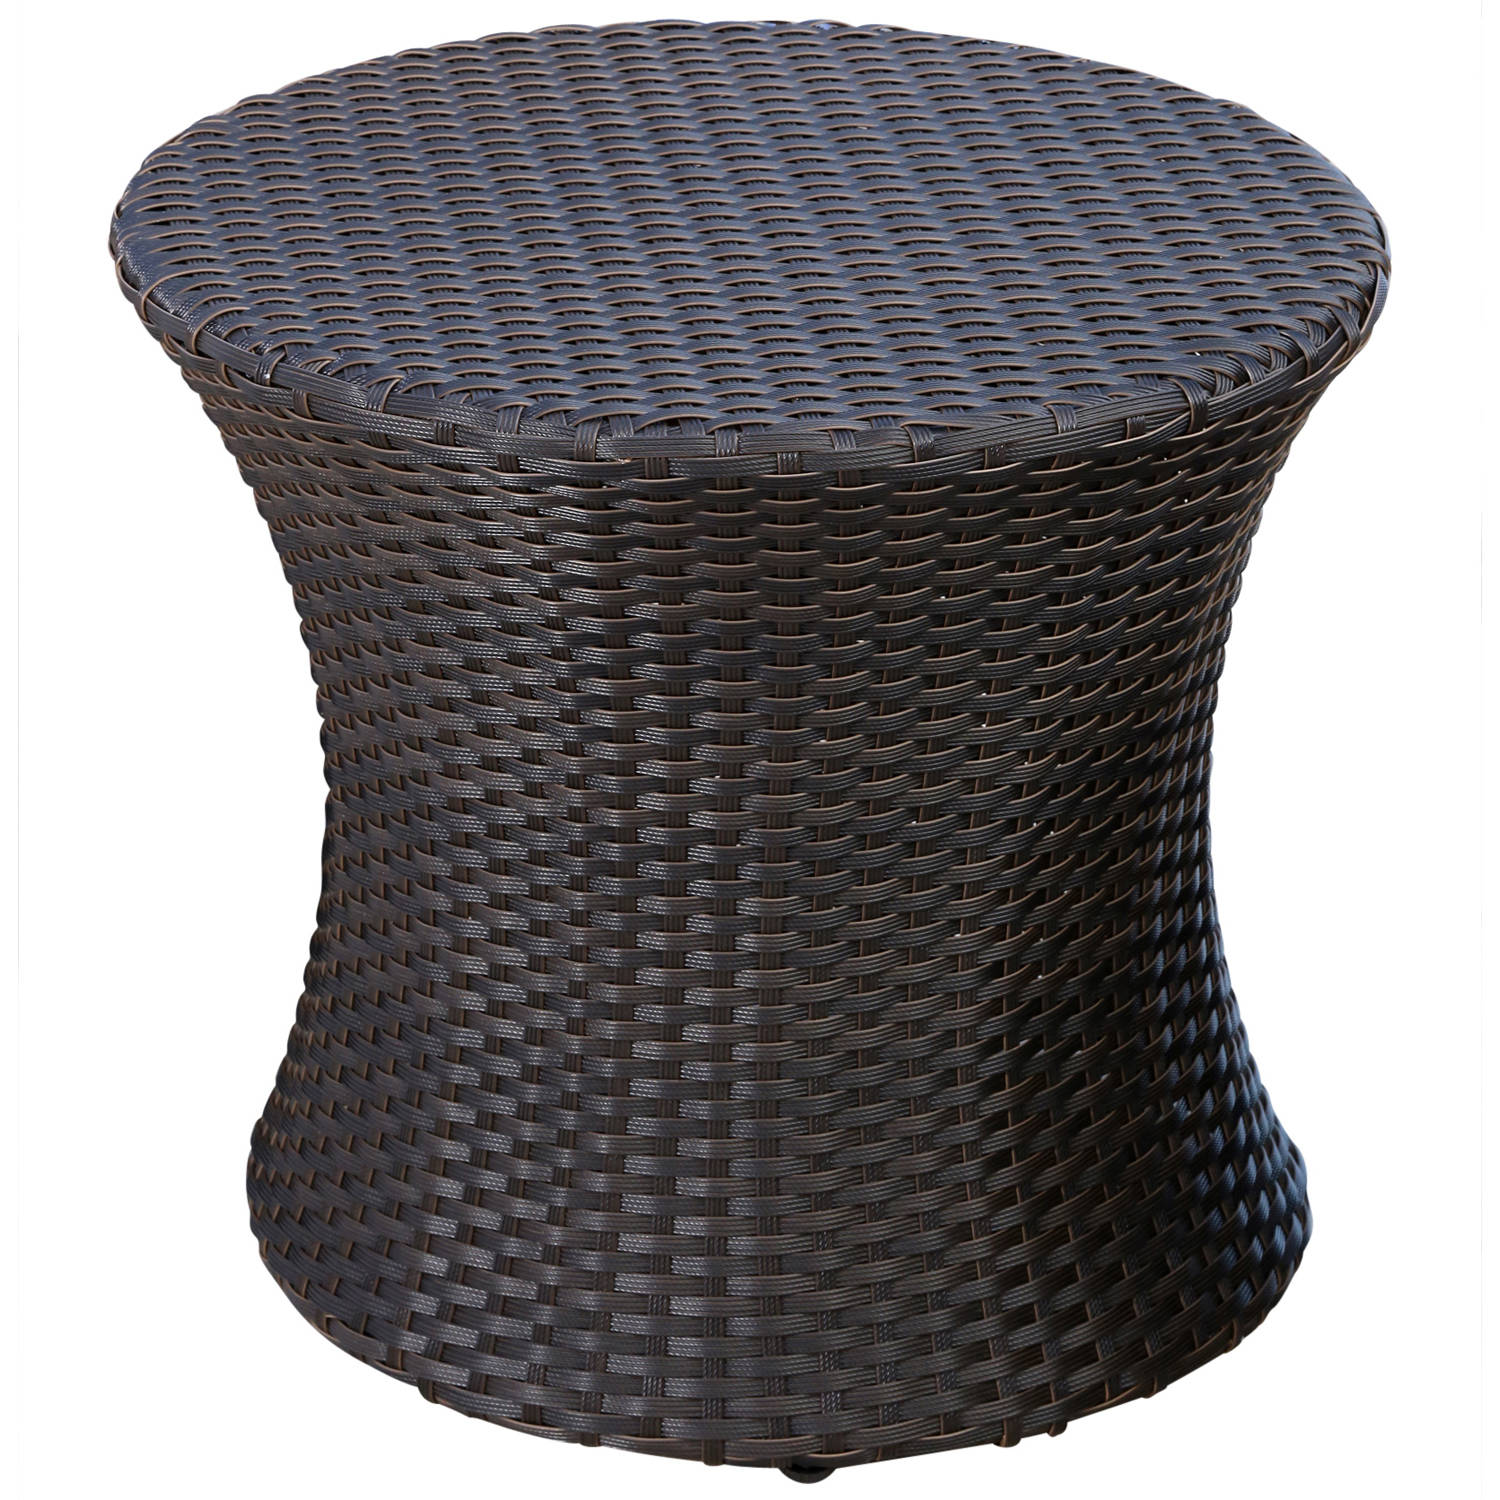 devon and claire laguna outdoor espresso brown wicker end table kmart furniture tables inch patio dimmable floor lamp coffee assembly instructions collapsible pet kennel pulaski